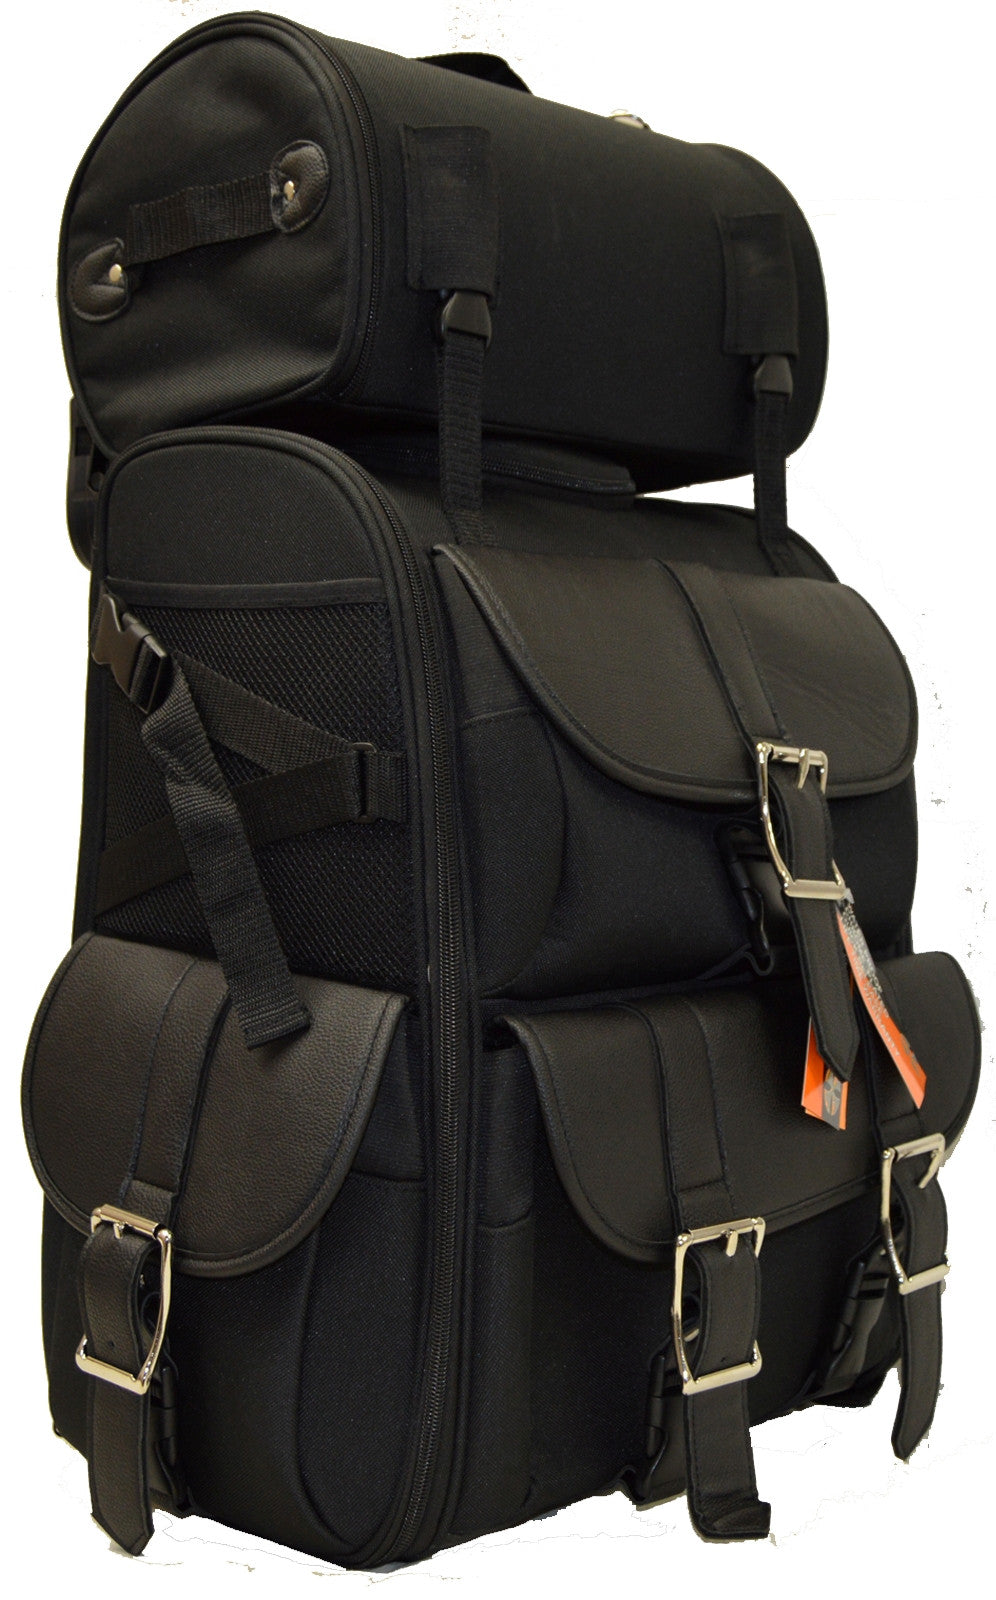 LARGE SISSY BAR TRAVEL BAR BAG TRAVEL LUGGAGE NEW BLACK